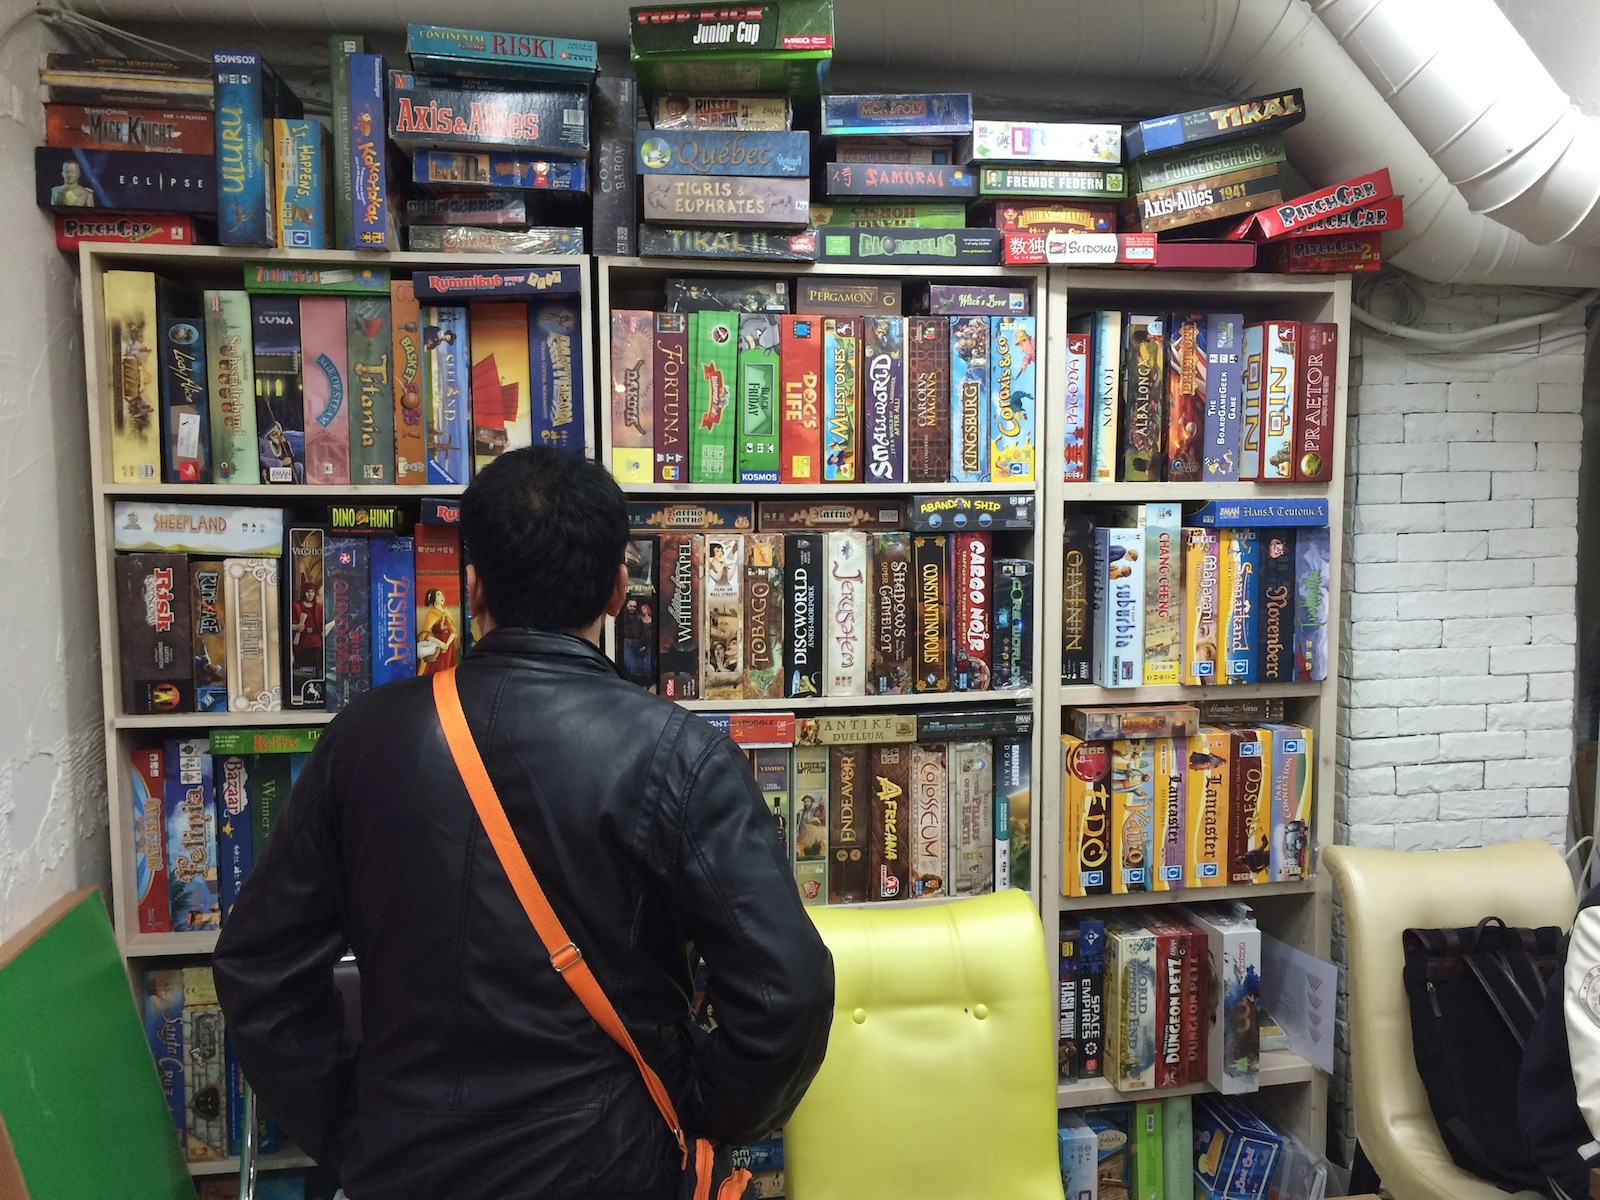 Poy checking out boardgames